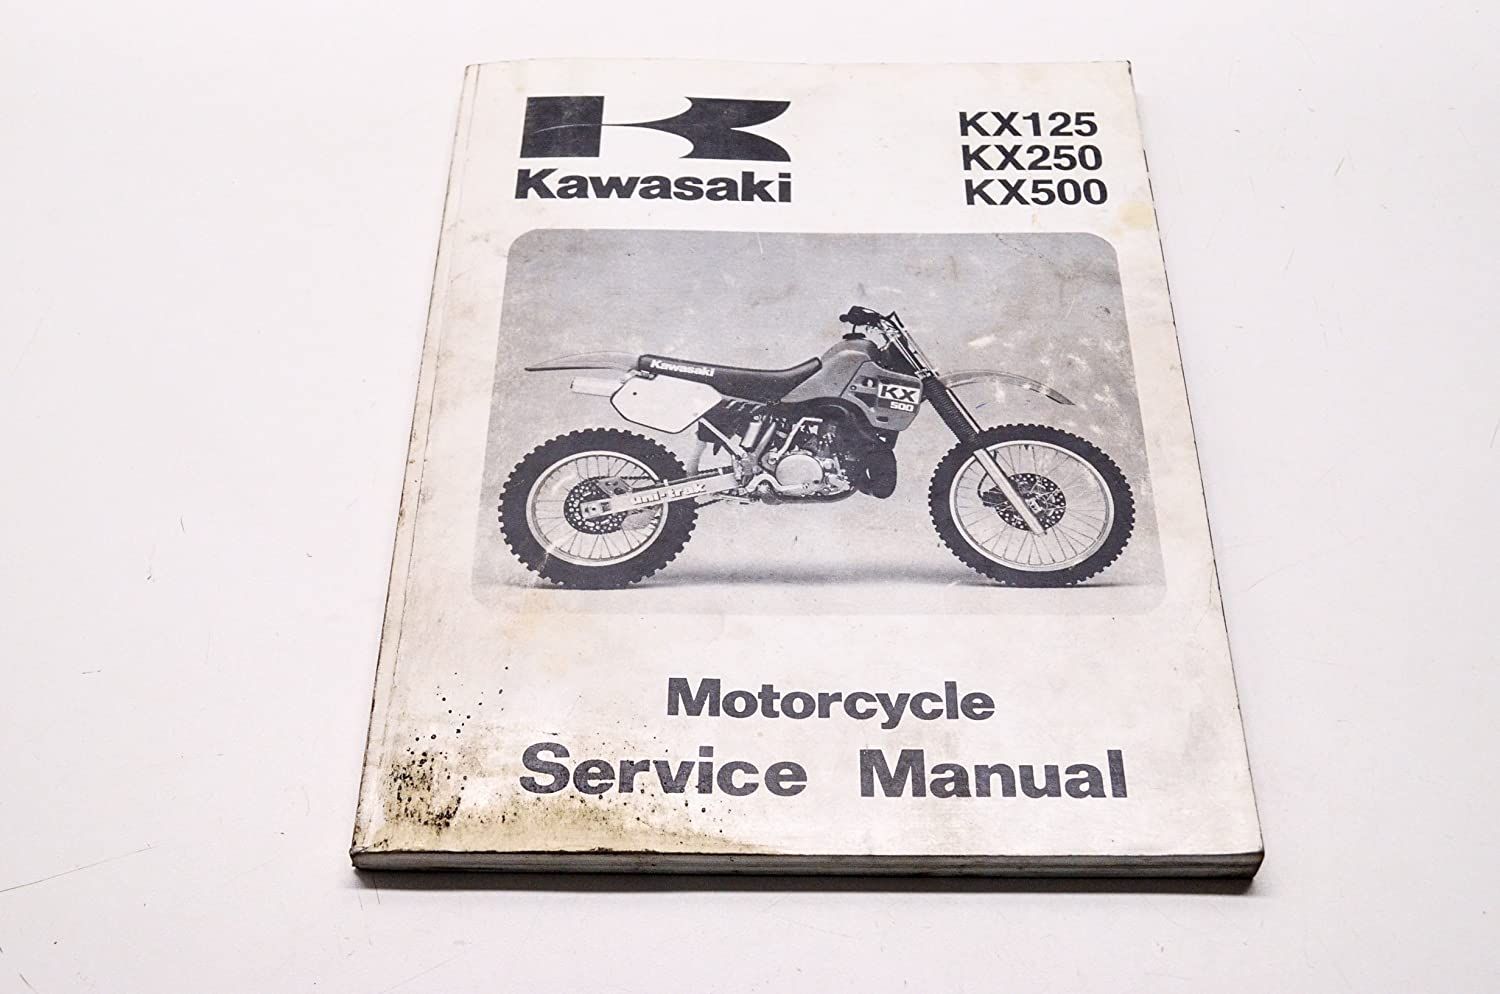 Amazon.com: Kawasaki 99924-1101-01 KX125 KX250 KX500 Service Manual 88 KX125/250/500.  QTY 1: Automotive